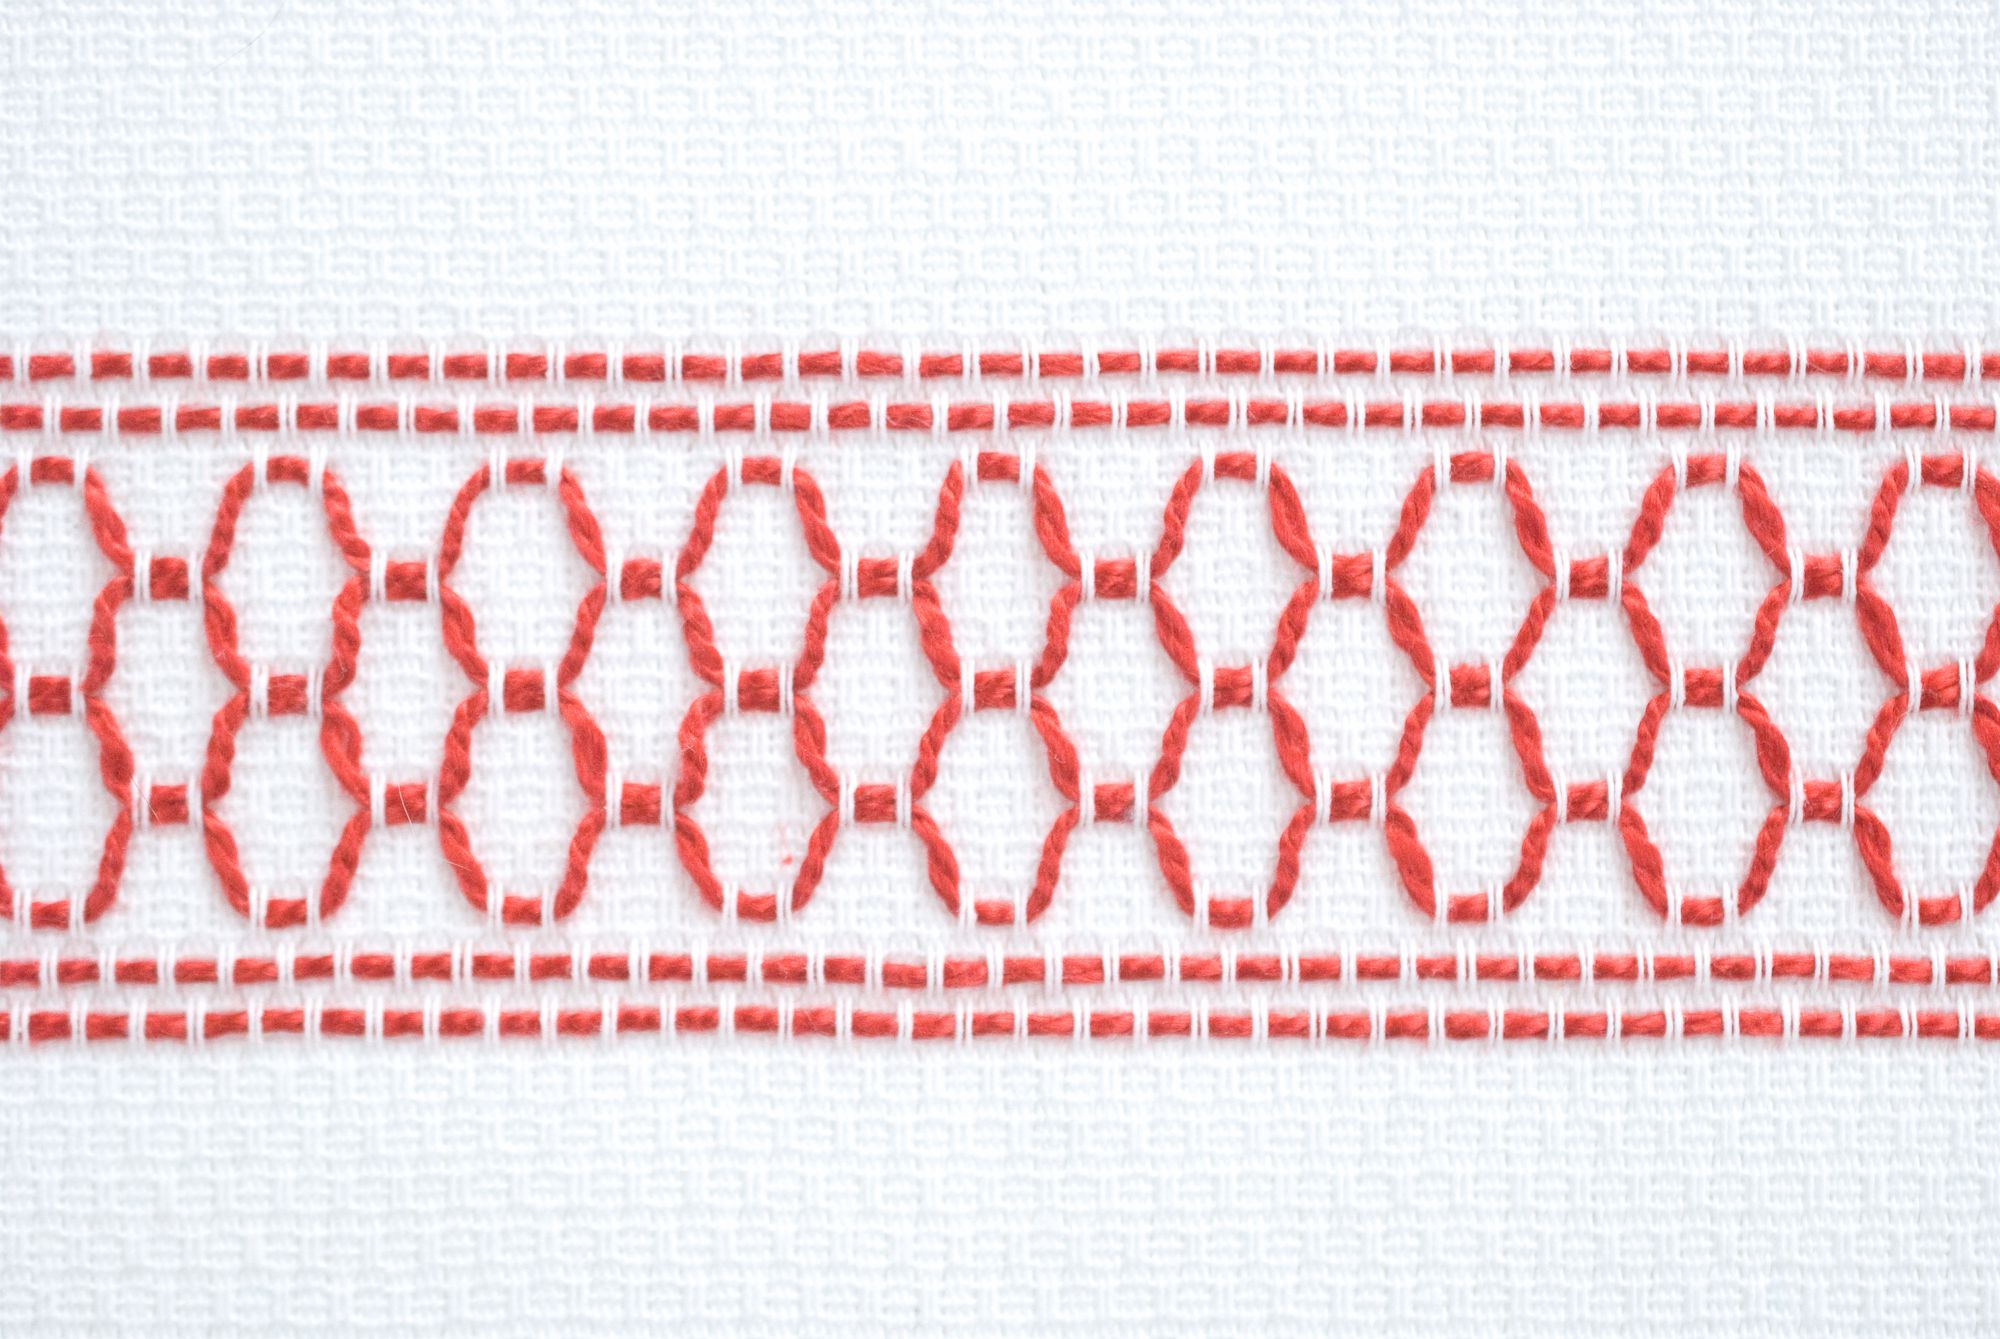 Huck Embroidery Patterns Free Swedish Huck Embroidery